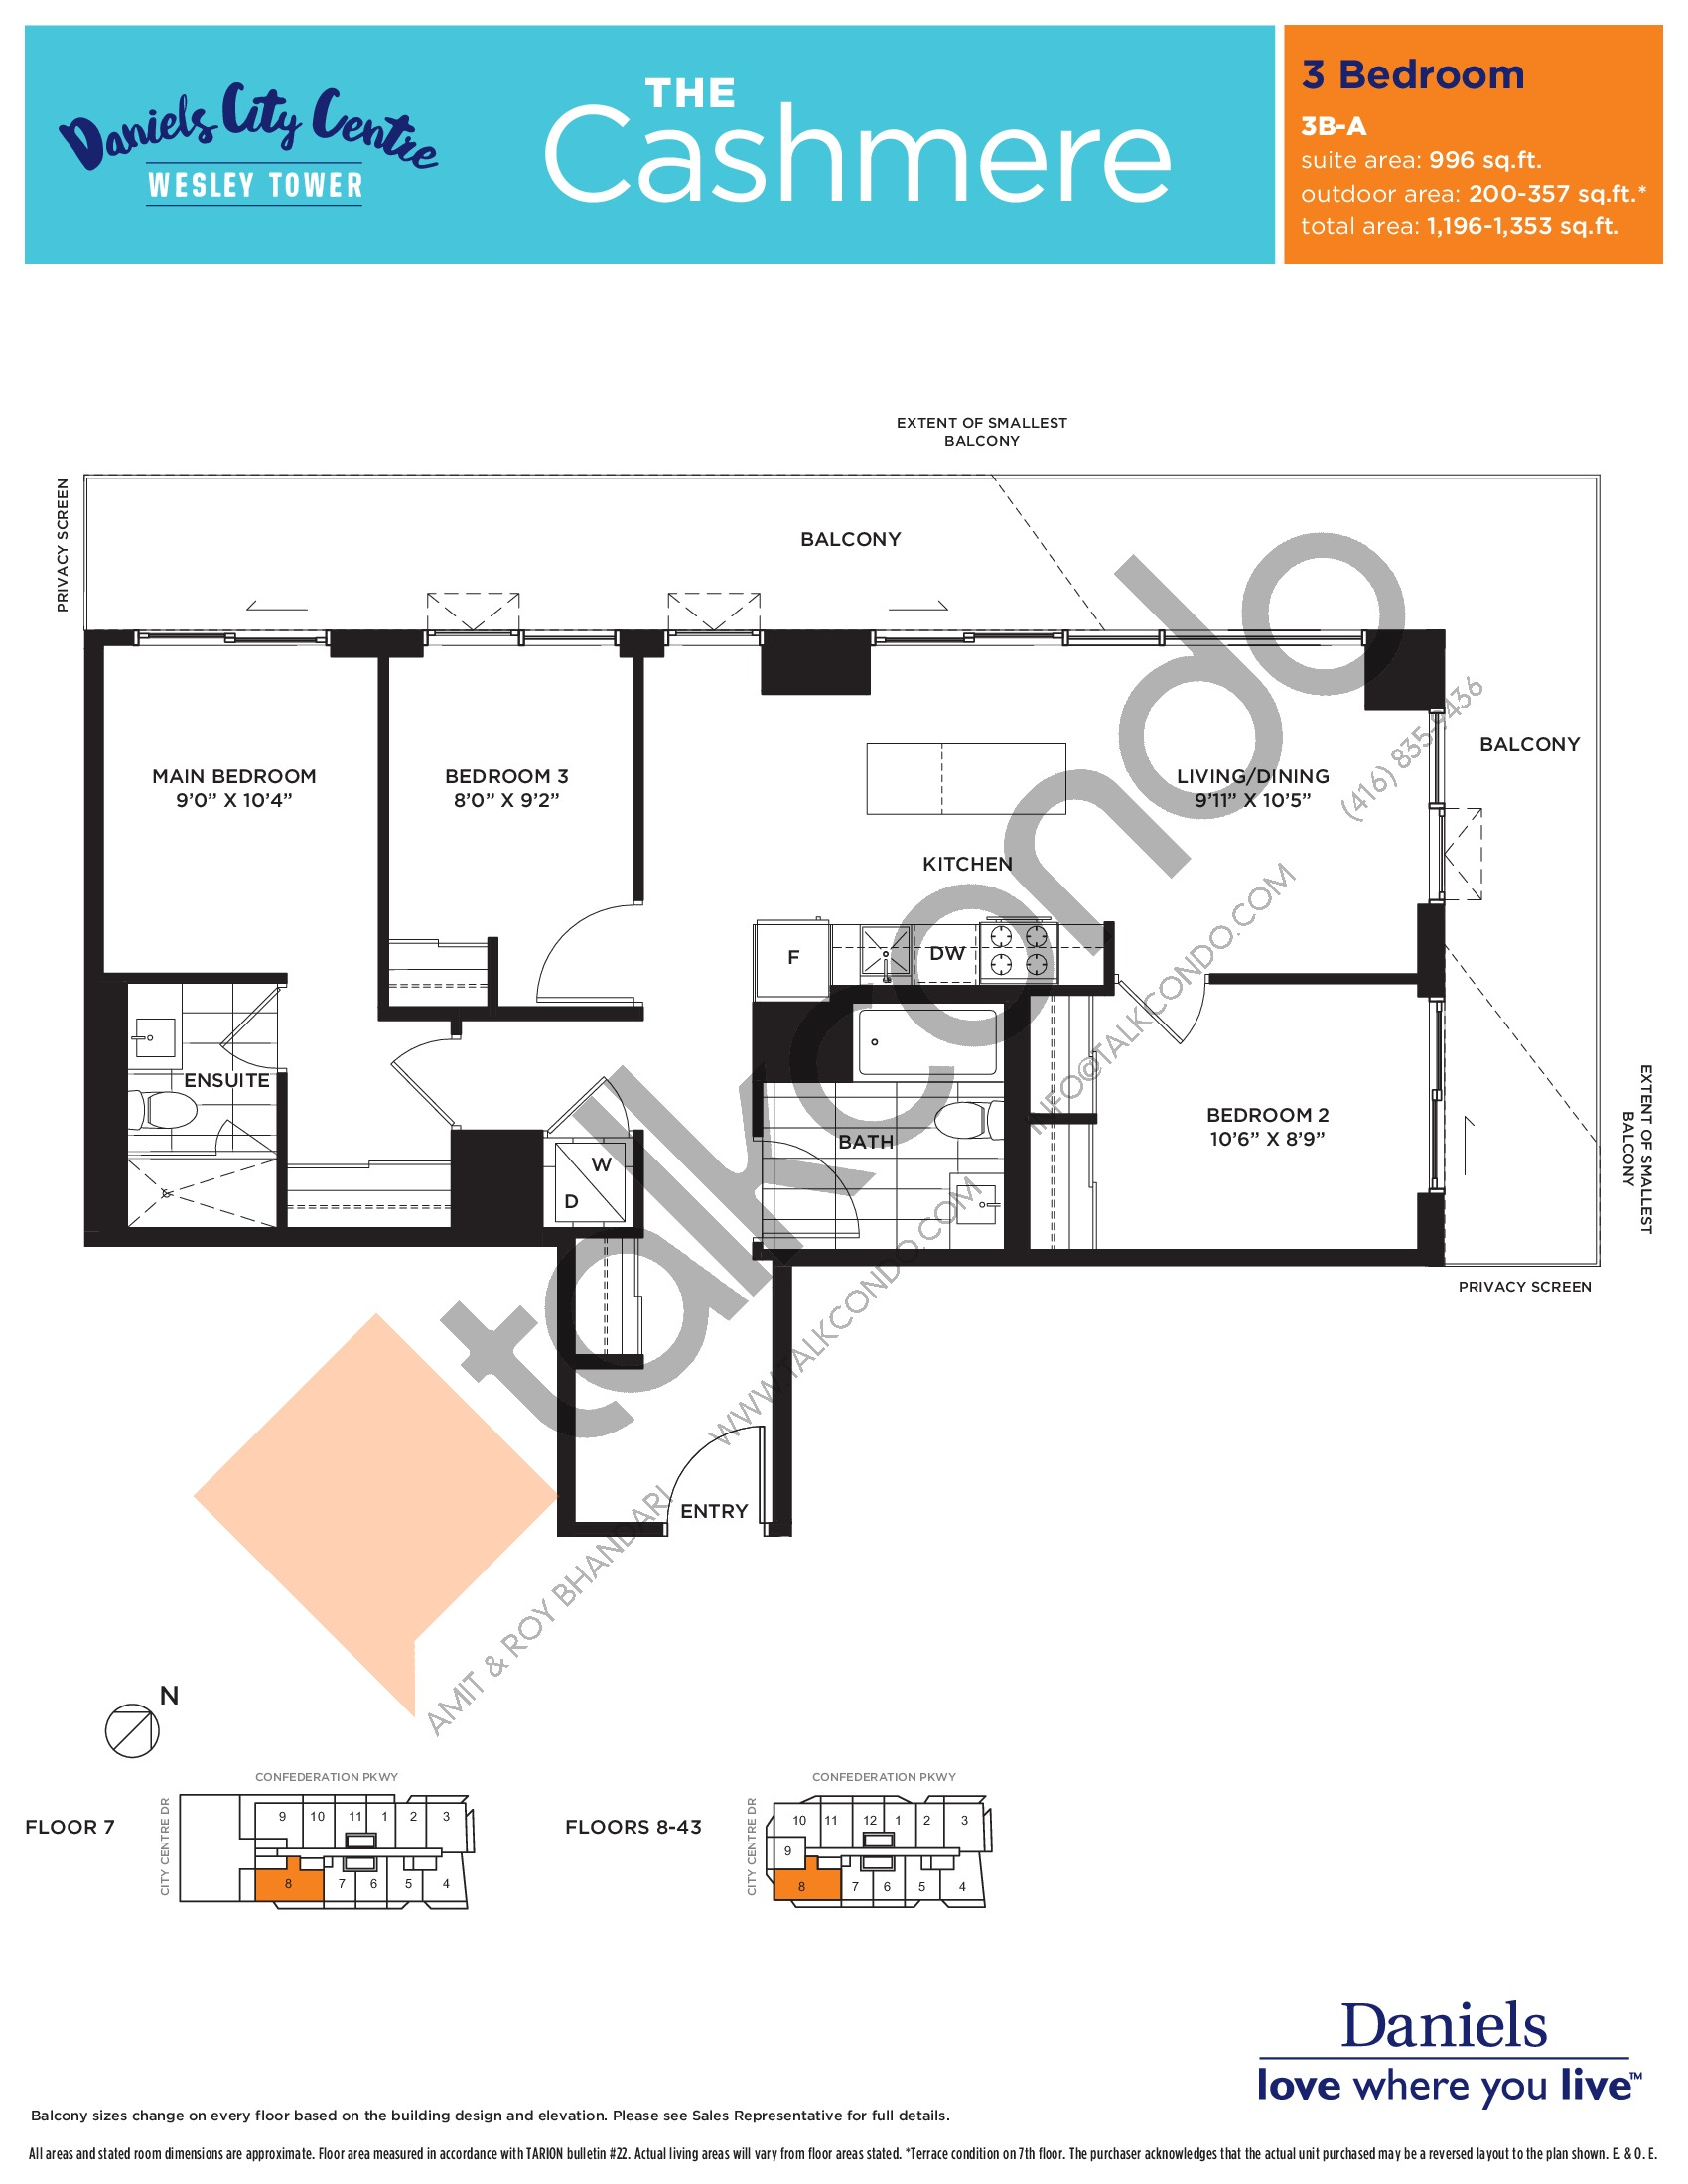 The Cashmere Floor Plan at The Wesley Tower at Daniels City Centre Condos - 996 sq.ft